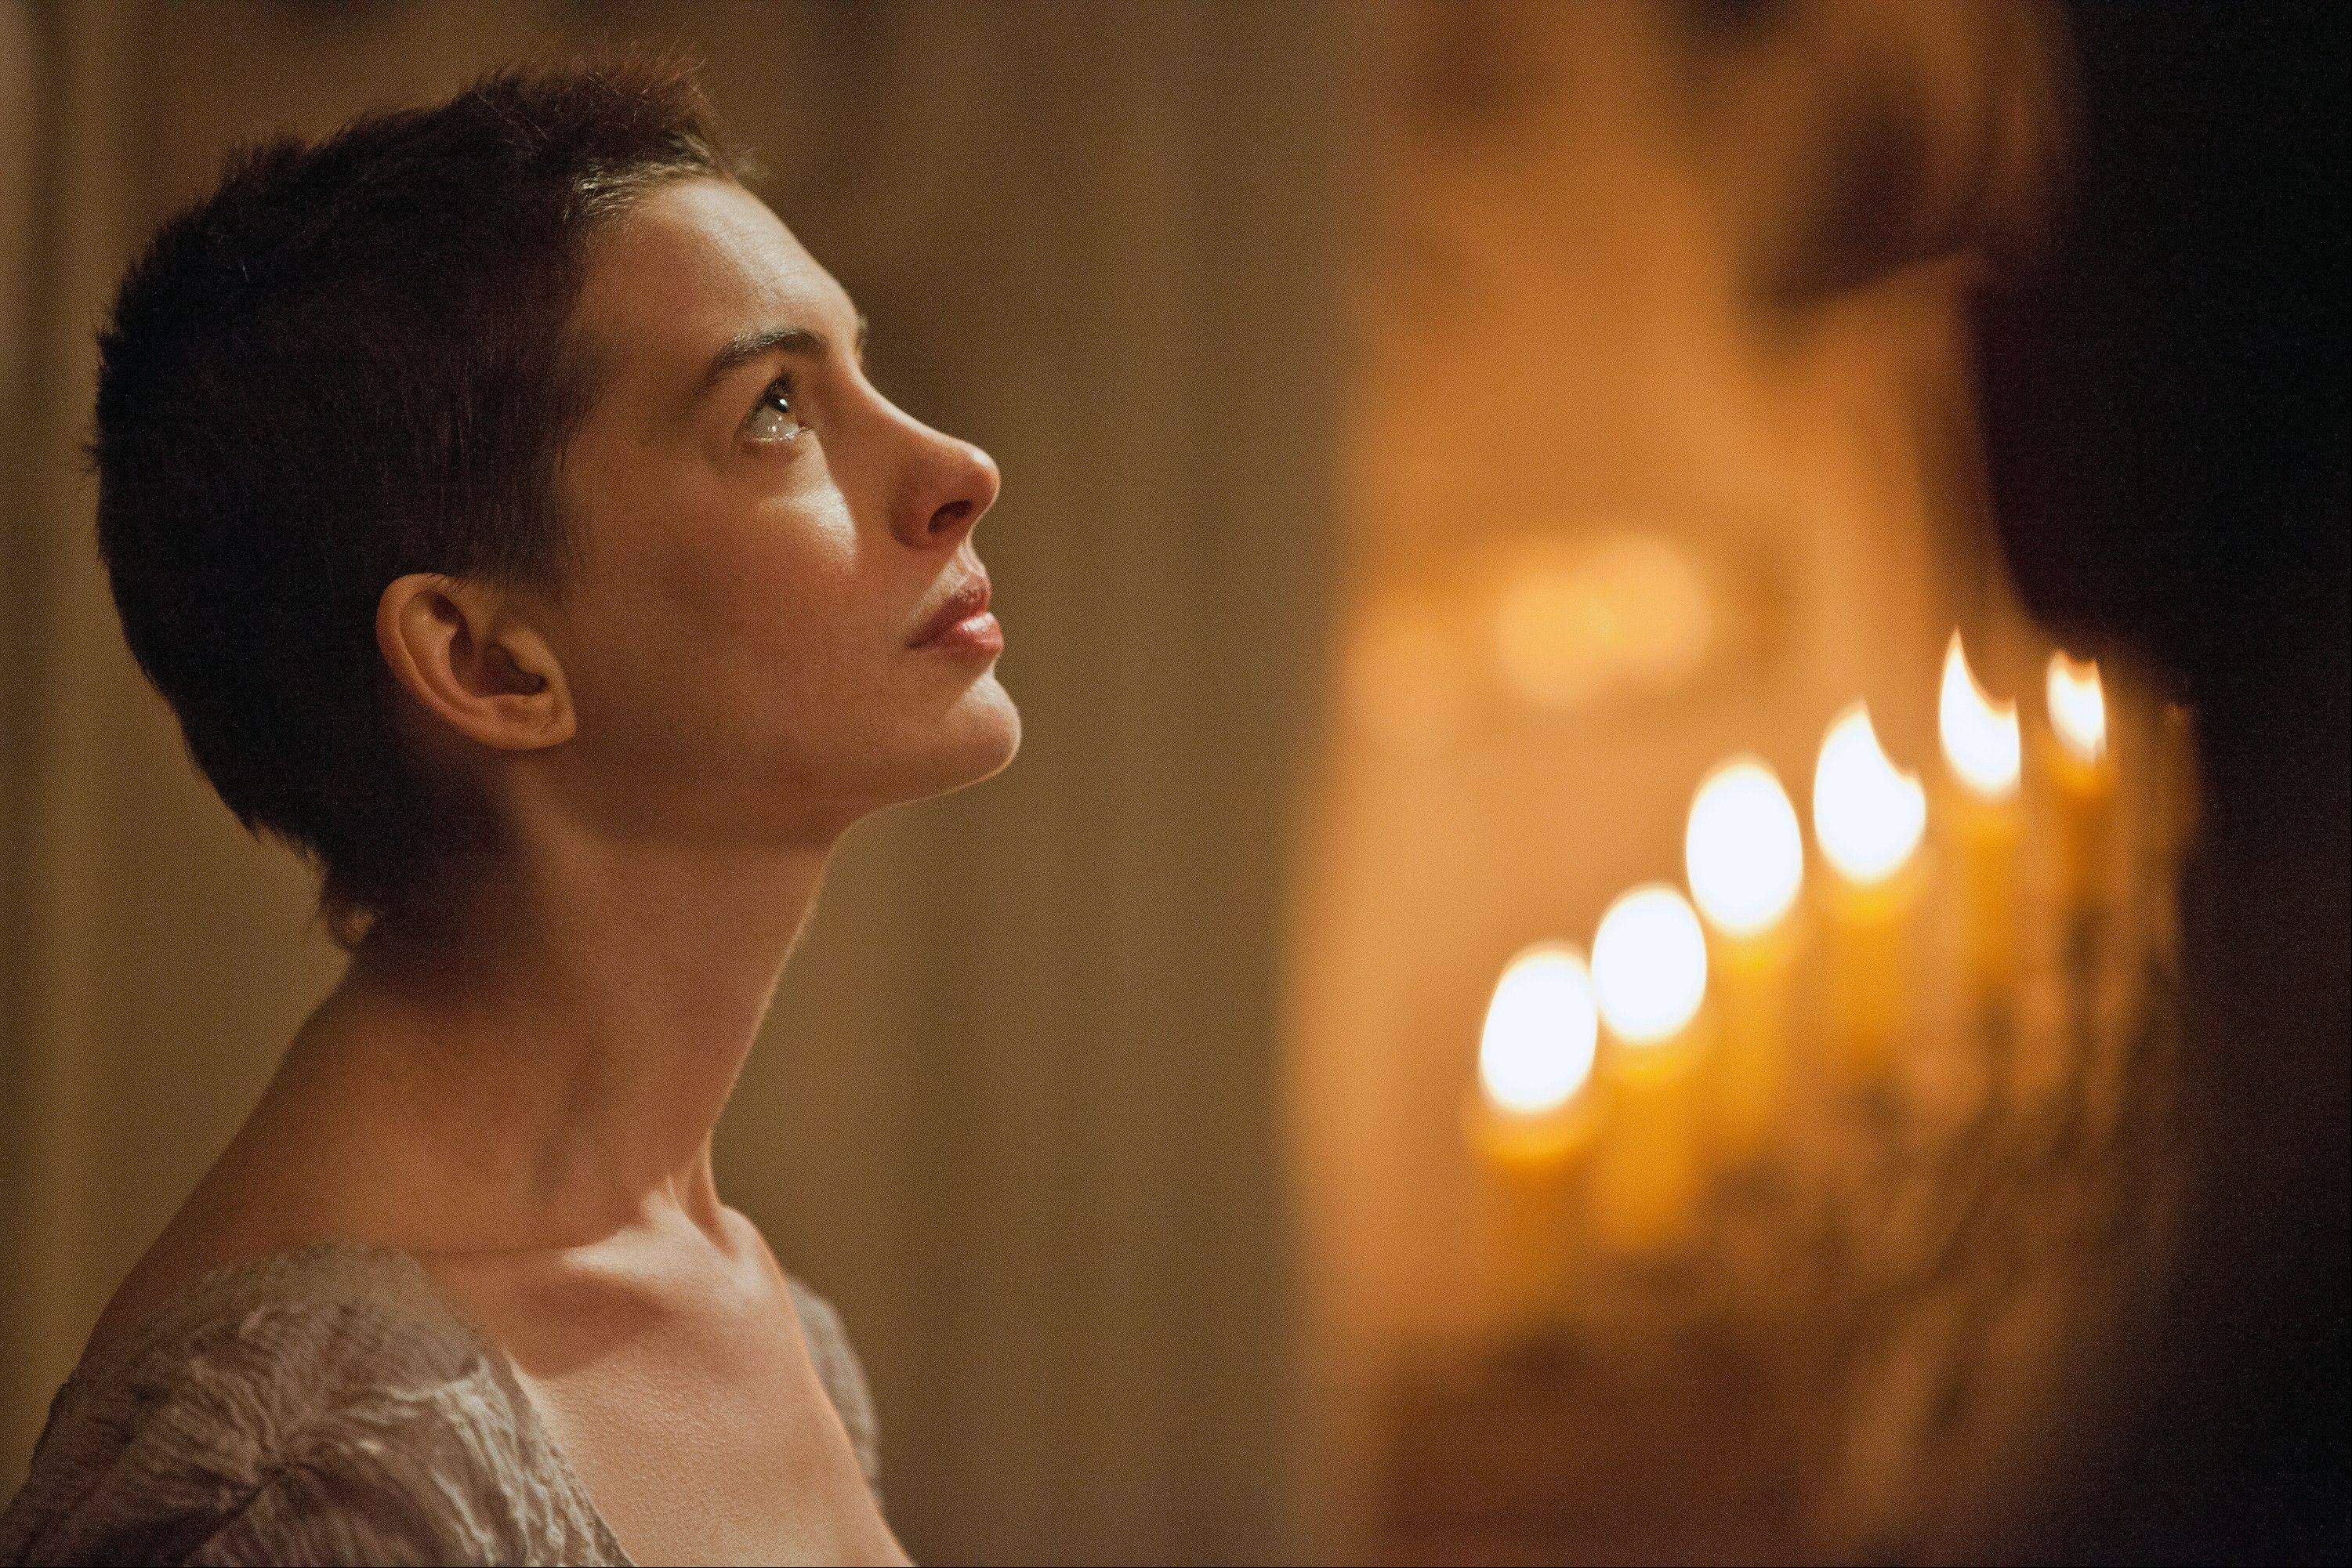 "This film image released by Universal Pictures shows actress Anne Hathaway portraying Fantine, a struggling, sickly mother forced into prostitution in 1800s Paris, in a scene from the screen adaptation of ""Les Miserables."""